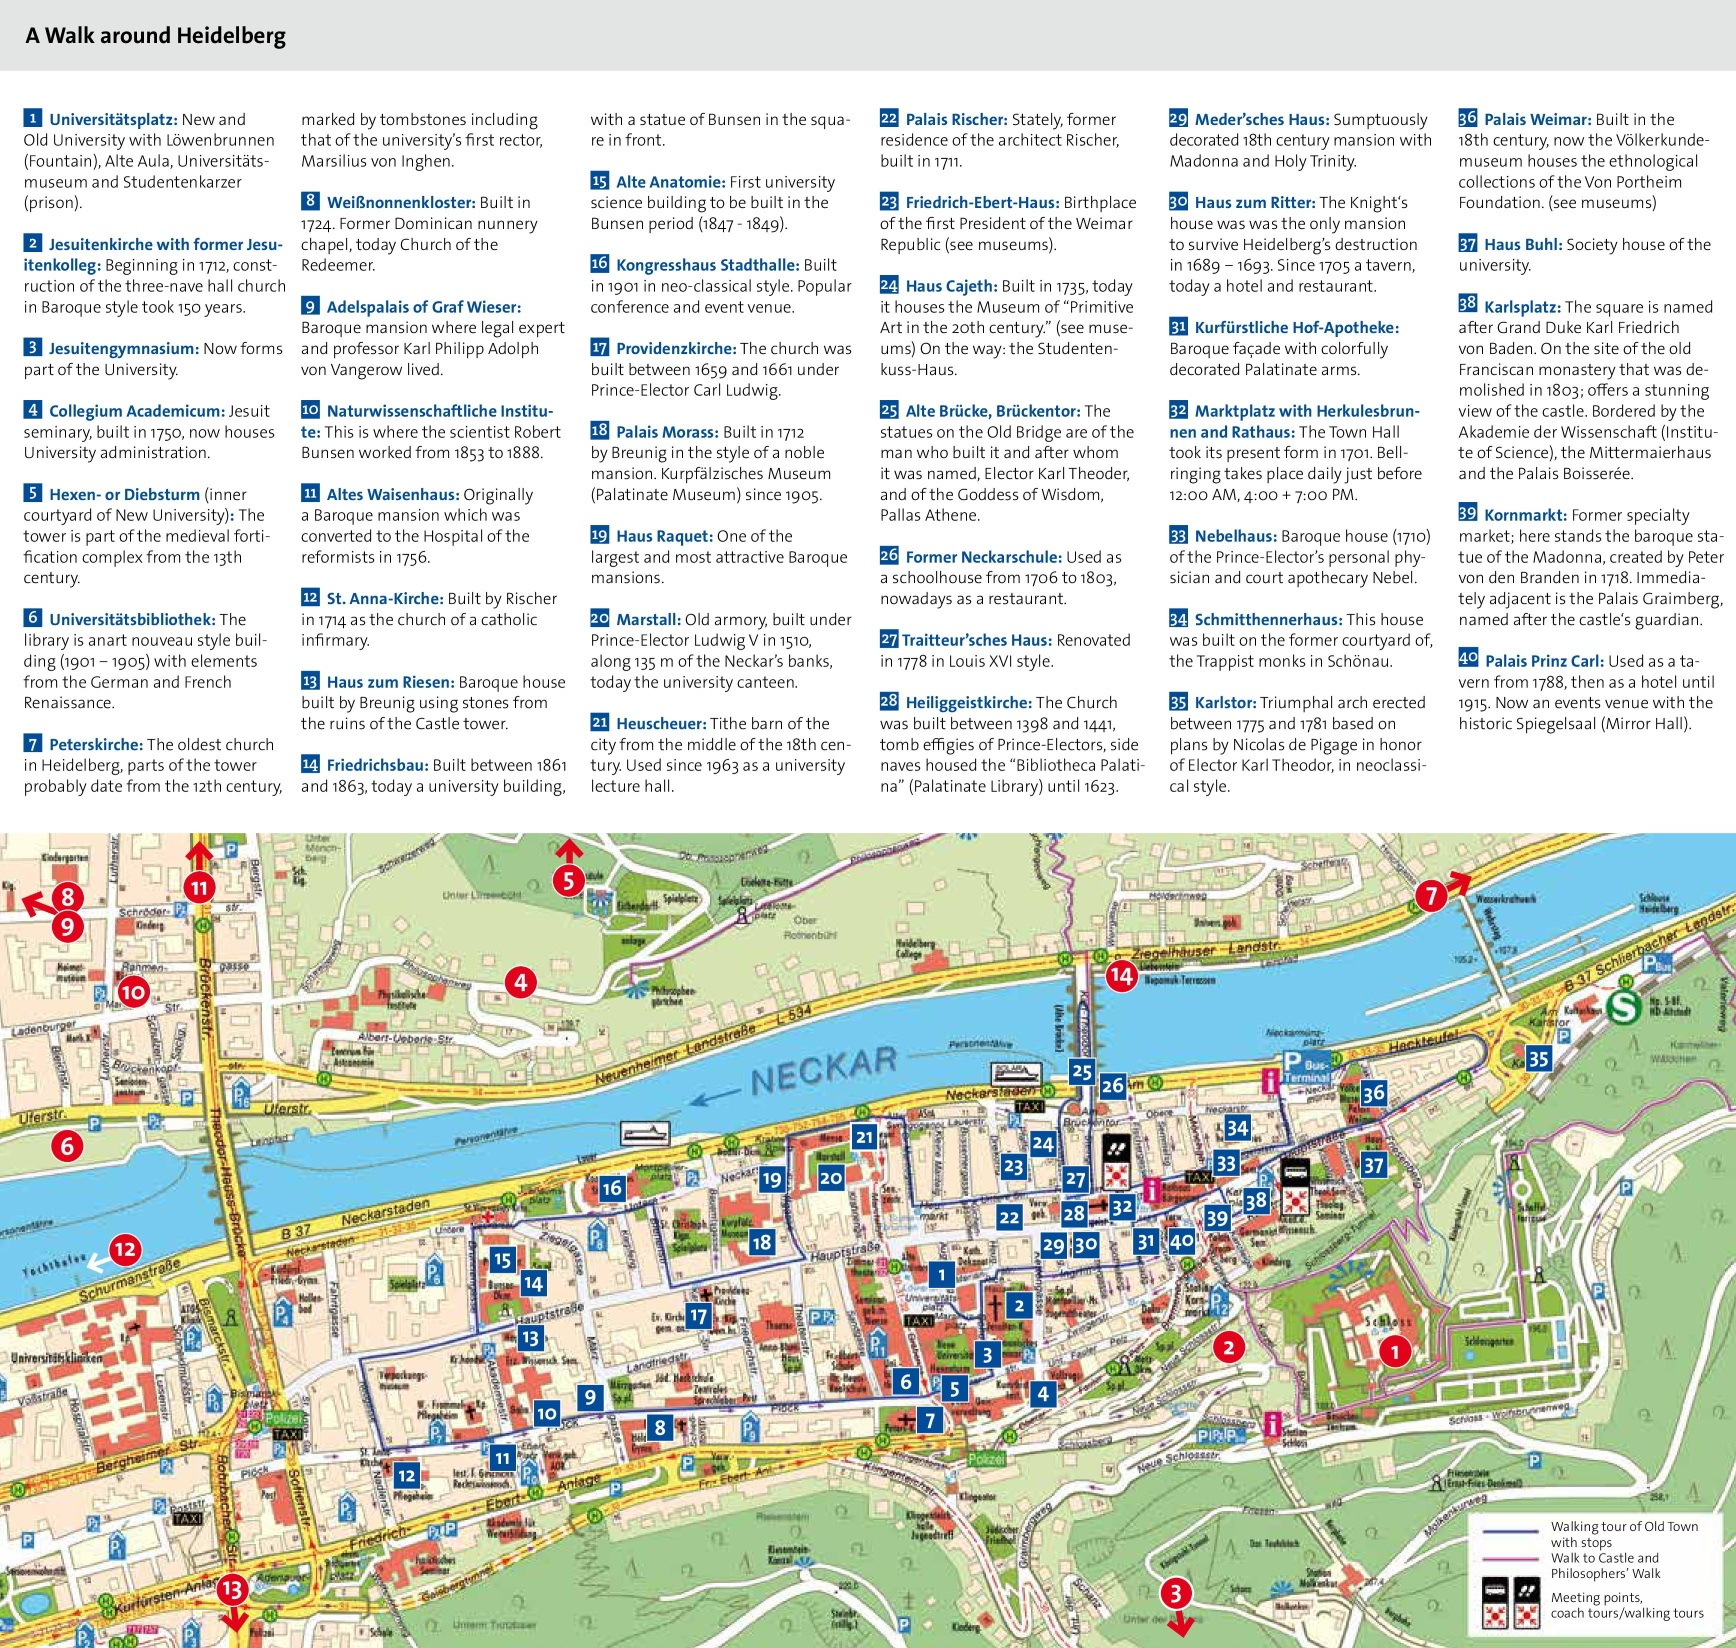 Heidelberg tourist attractions map – Germany Tourist Attractions Map